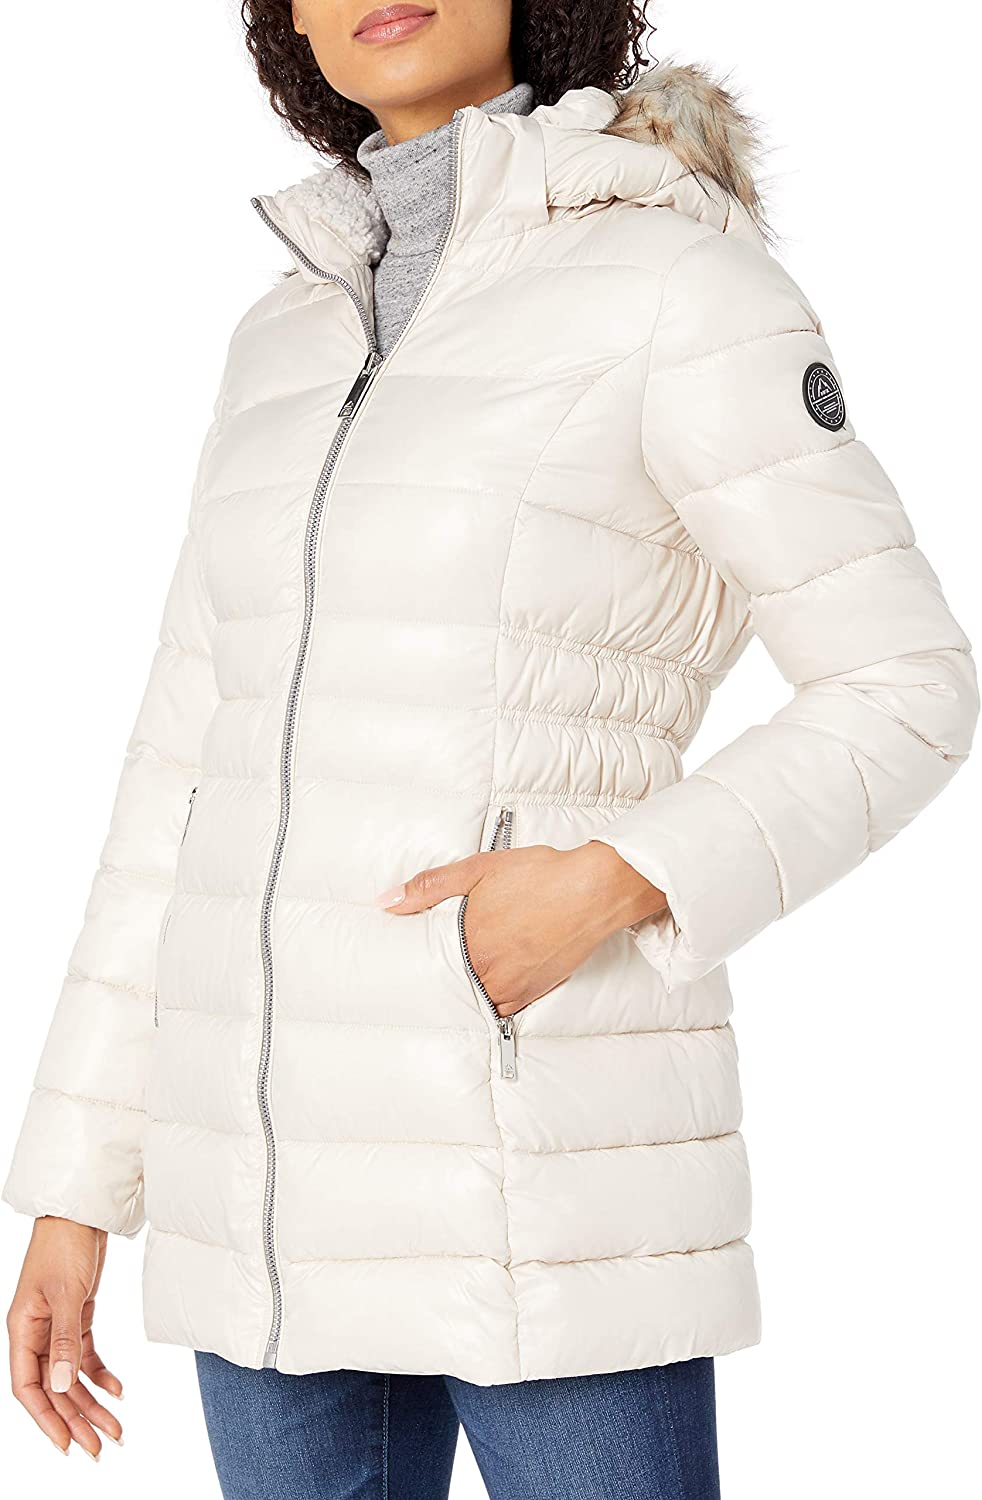 HFX womens 3/4 Puffer With Faux Fur Hood and Cinched Sides